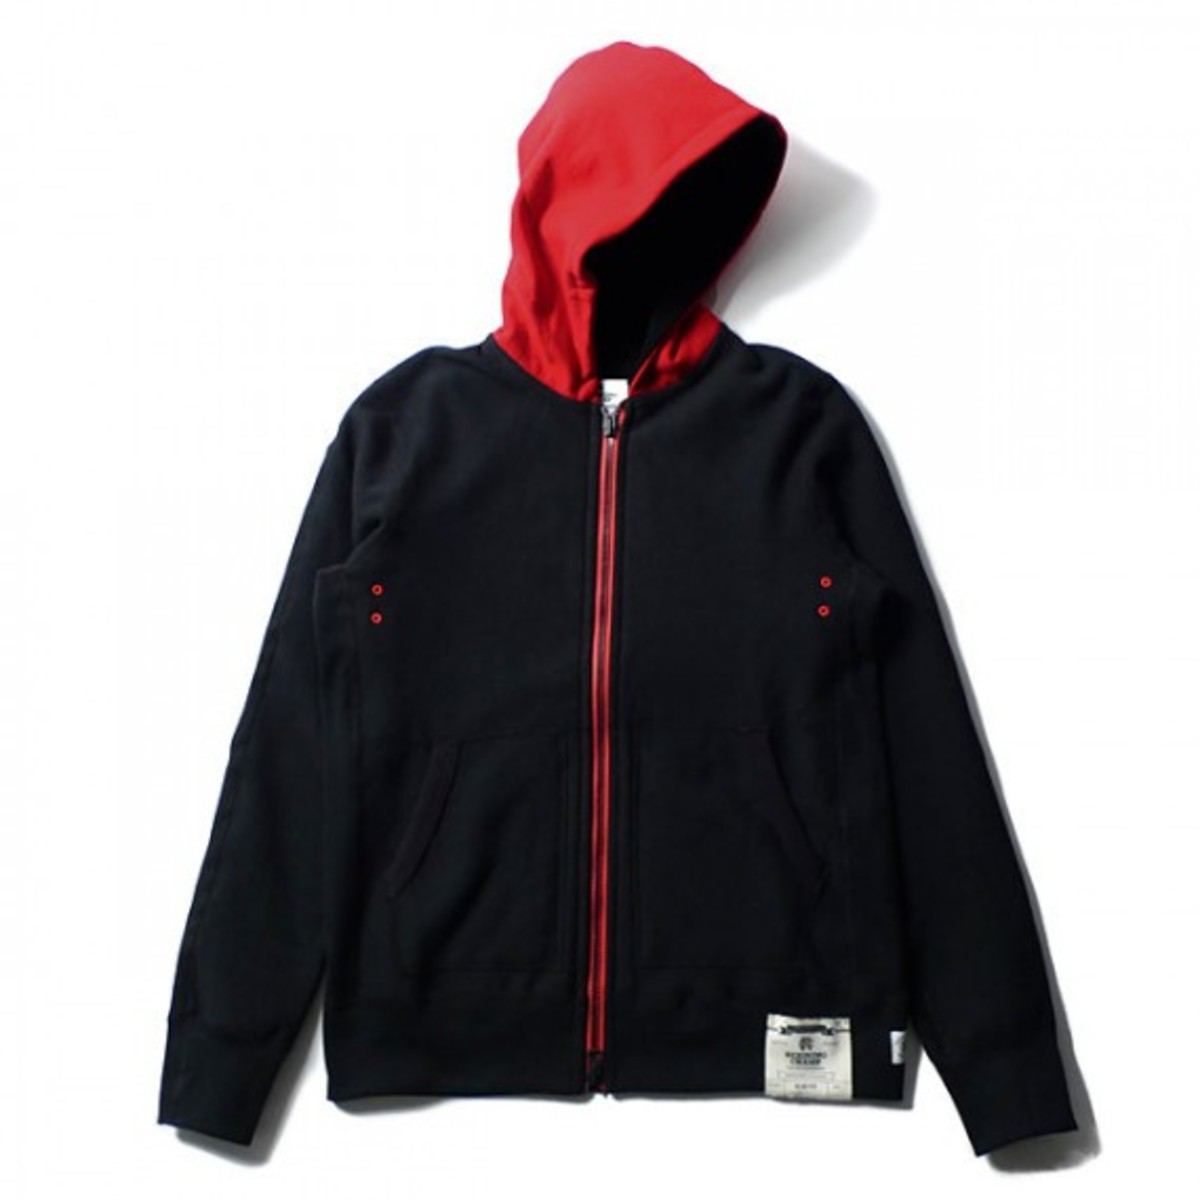 reigning-champ-fall-winter-2010-collection-delivery-2